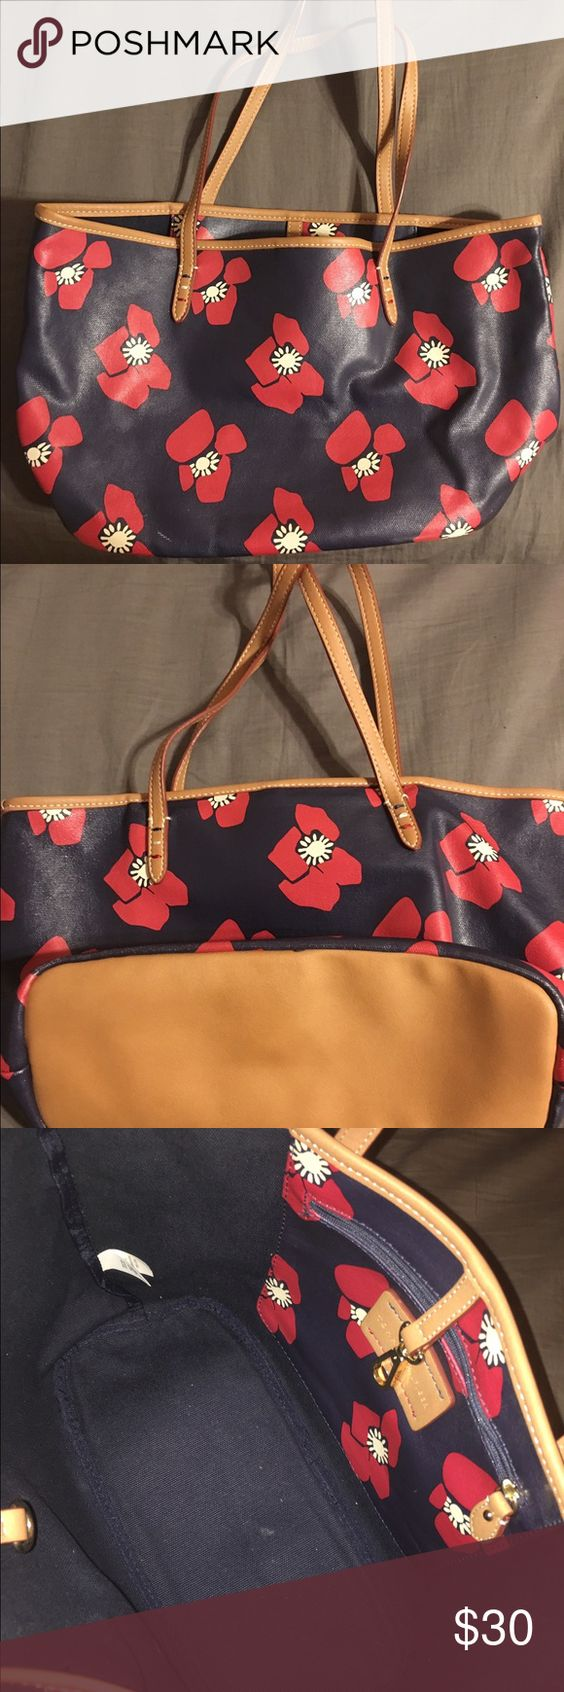 Floral Tommy Hilfiger bag! Floral Tommy Hilfiger bag! Has been worn! No signs of wear and tear! NO TRADES! Bags Shoulder Bags